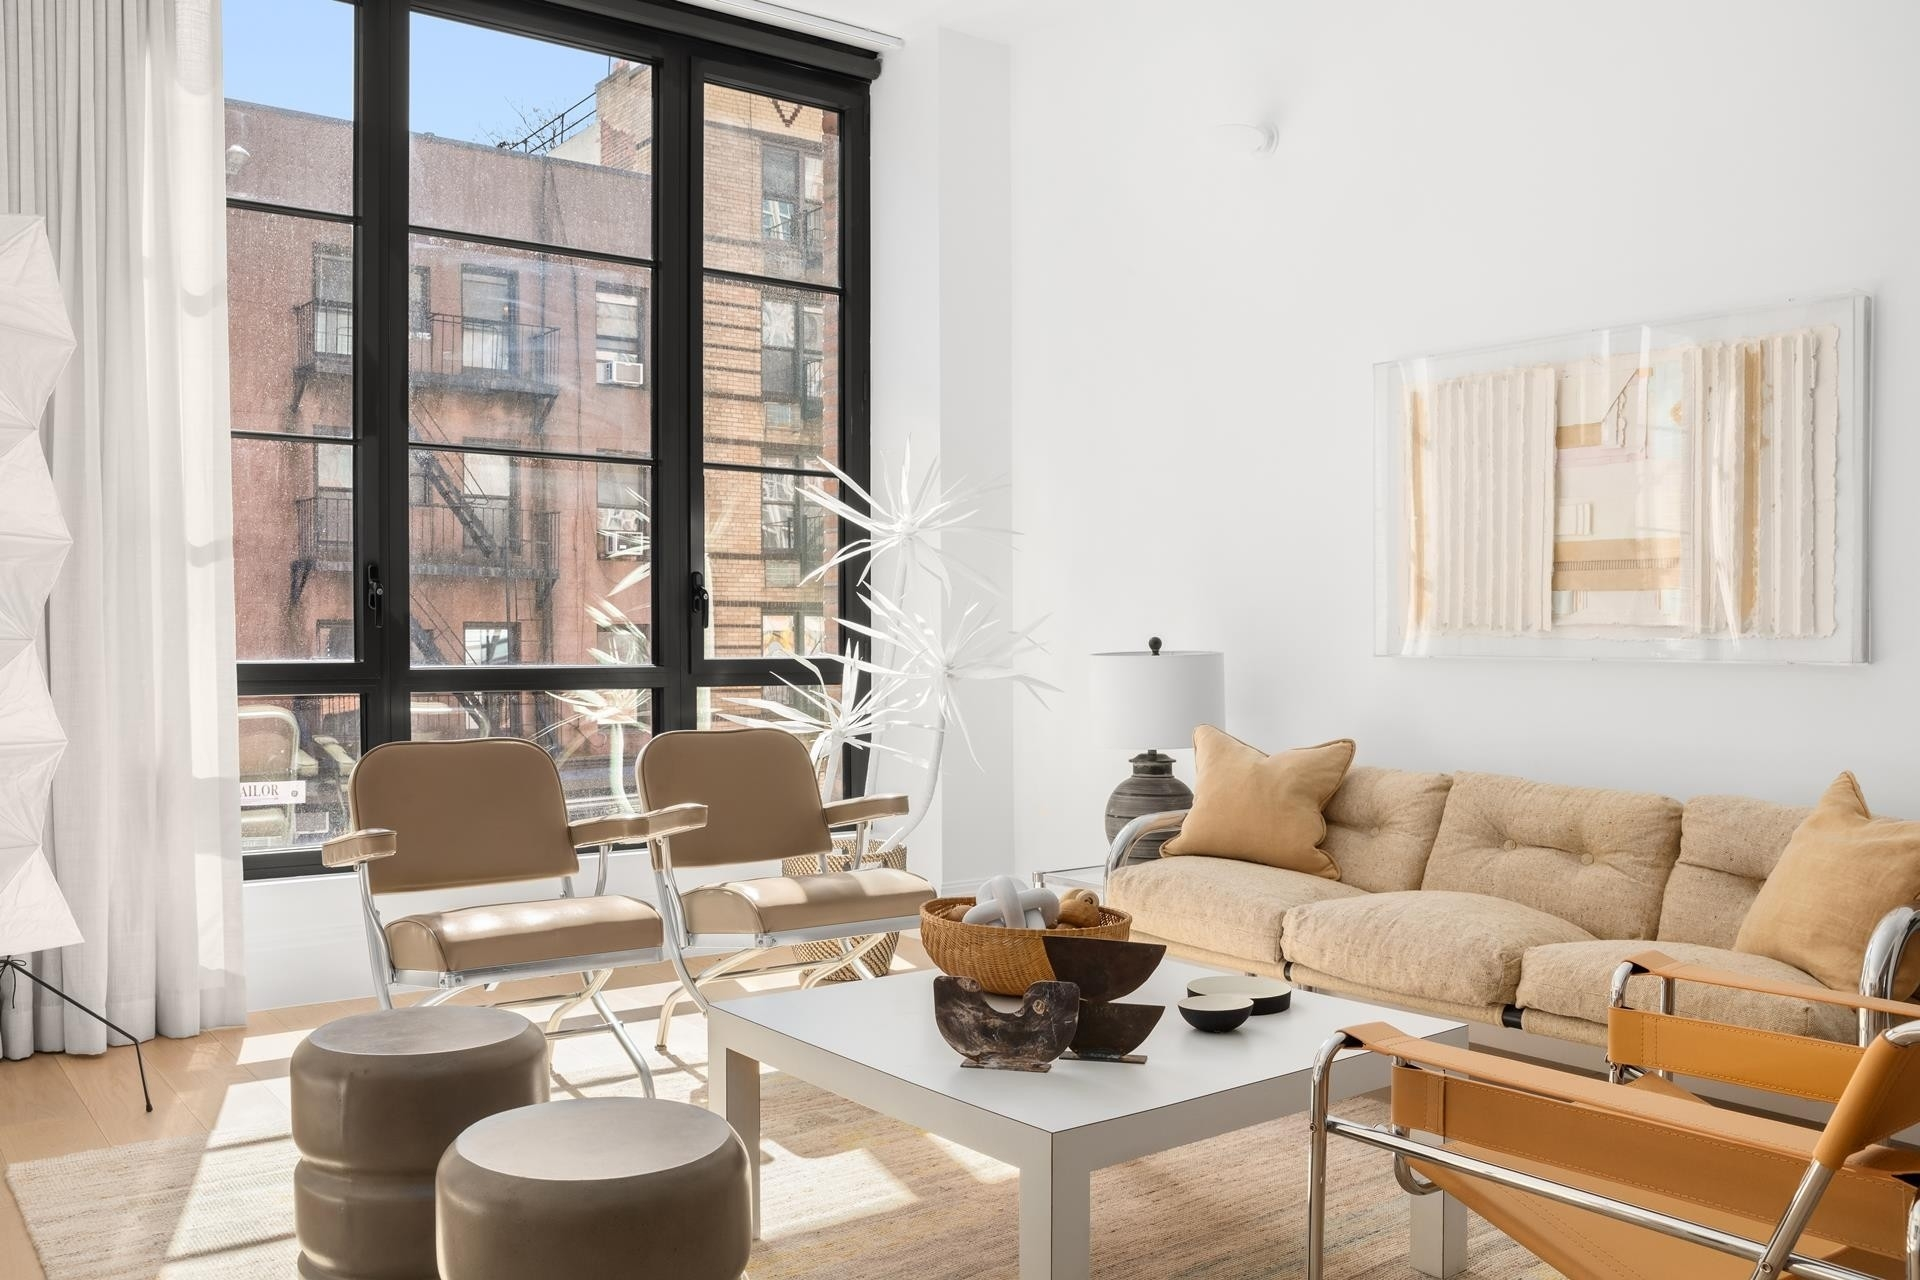 4. Condominiums for Sale at Steiner East Village, 438 E 12TH ST , 3Q East Village, New York, NY 10009